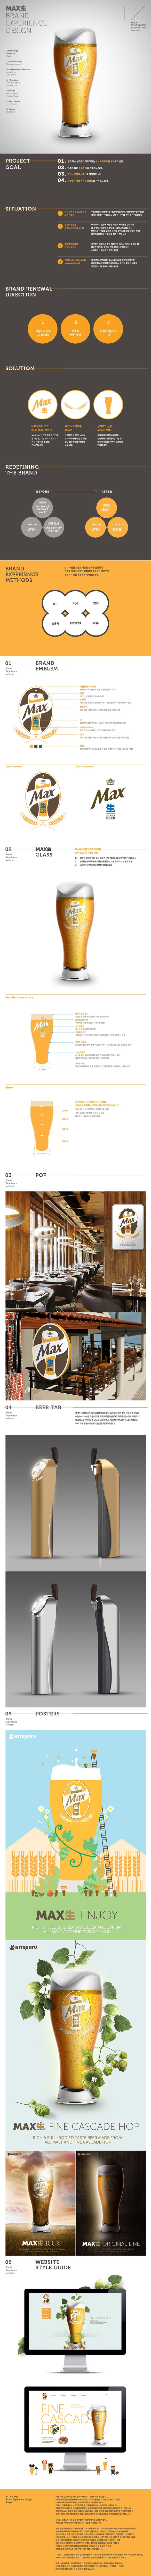 HITE MAX生 Brand Experience Design on Behance